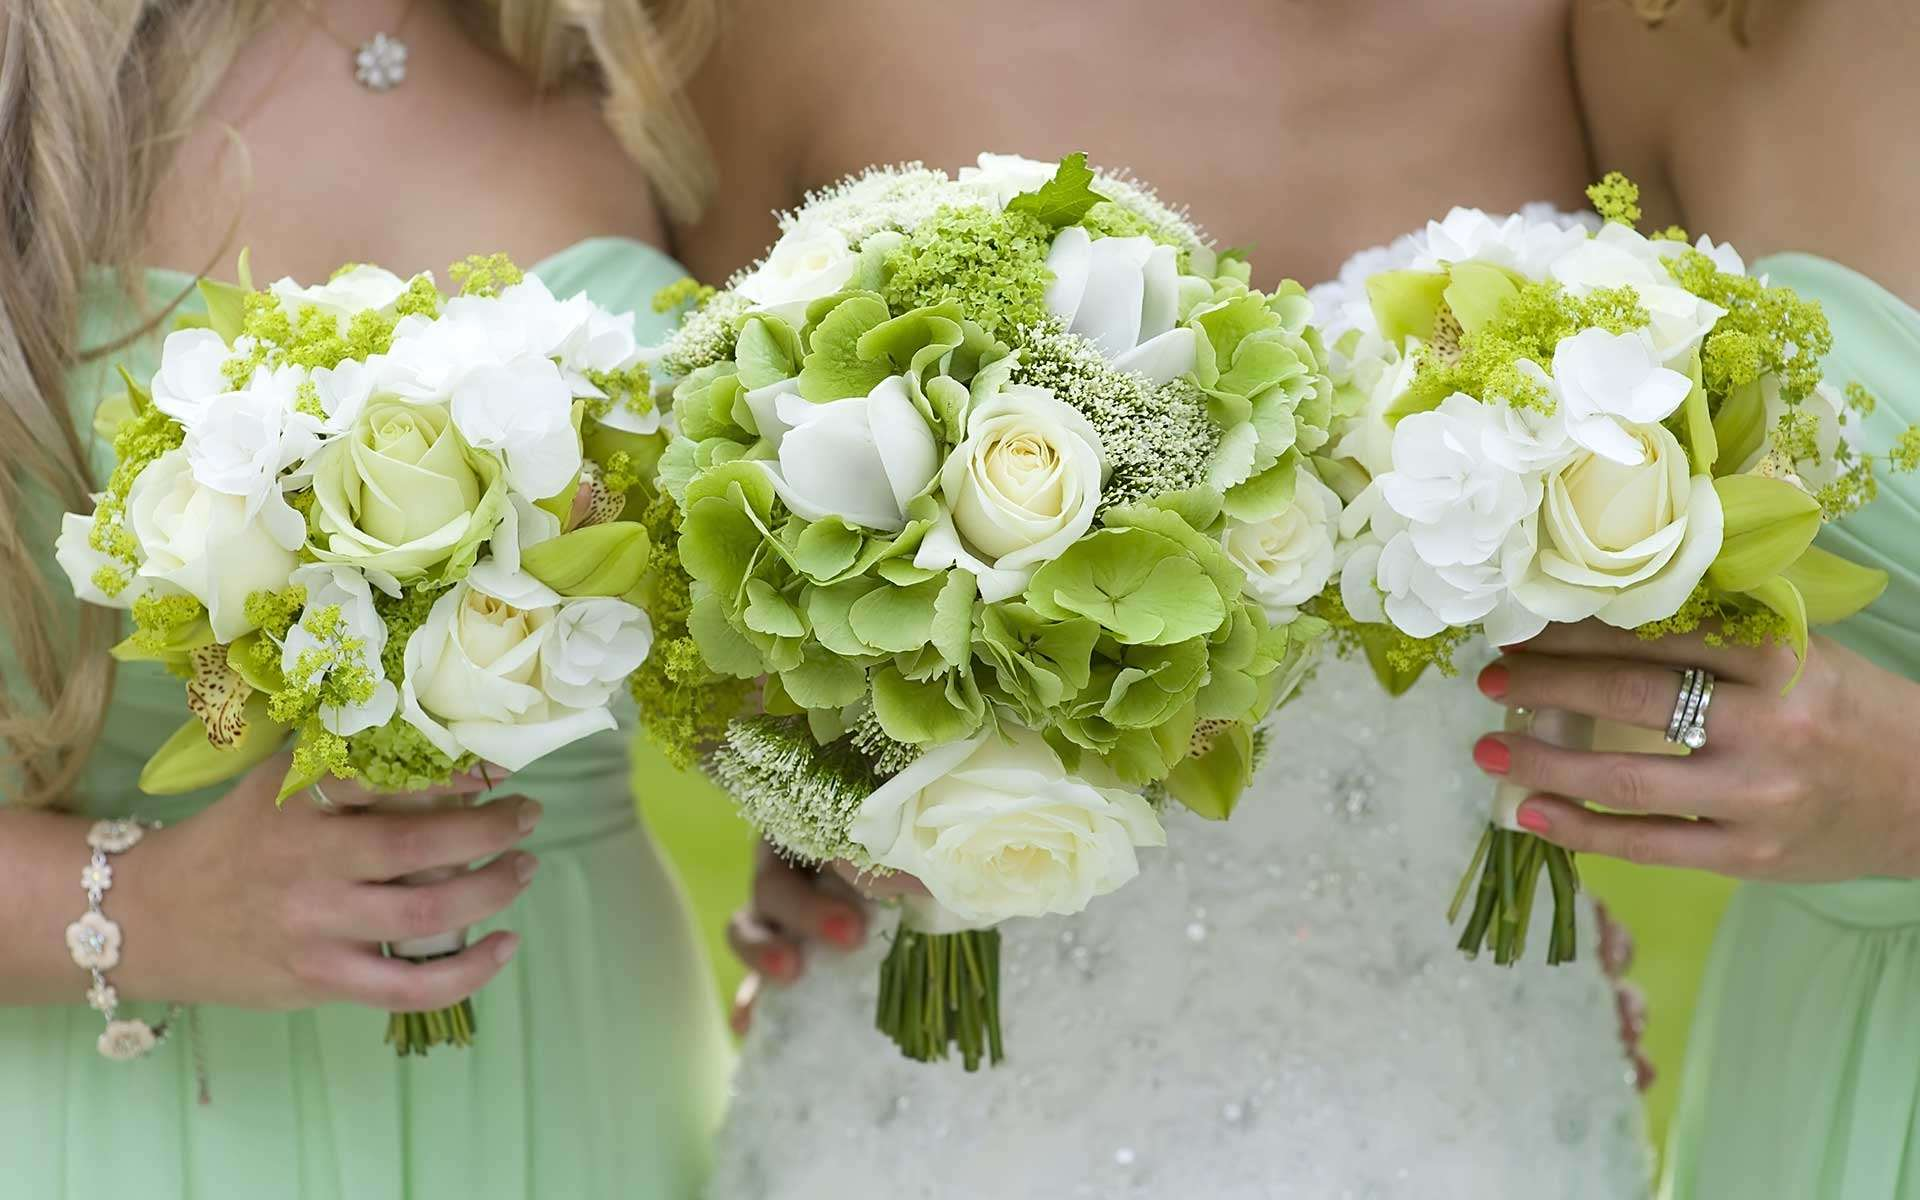 White-Roses-Seamlessly-Peak-Through-Green-Hydrangeas-A-Pinch-Of-Baby's-Breath-Adds-Texture-To-These-Bridal-Bouquets